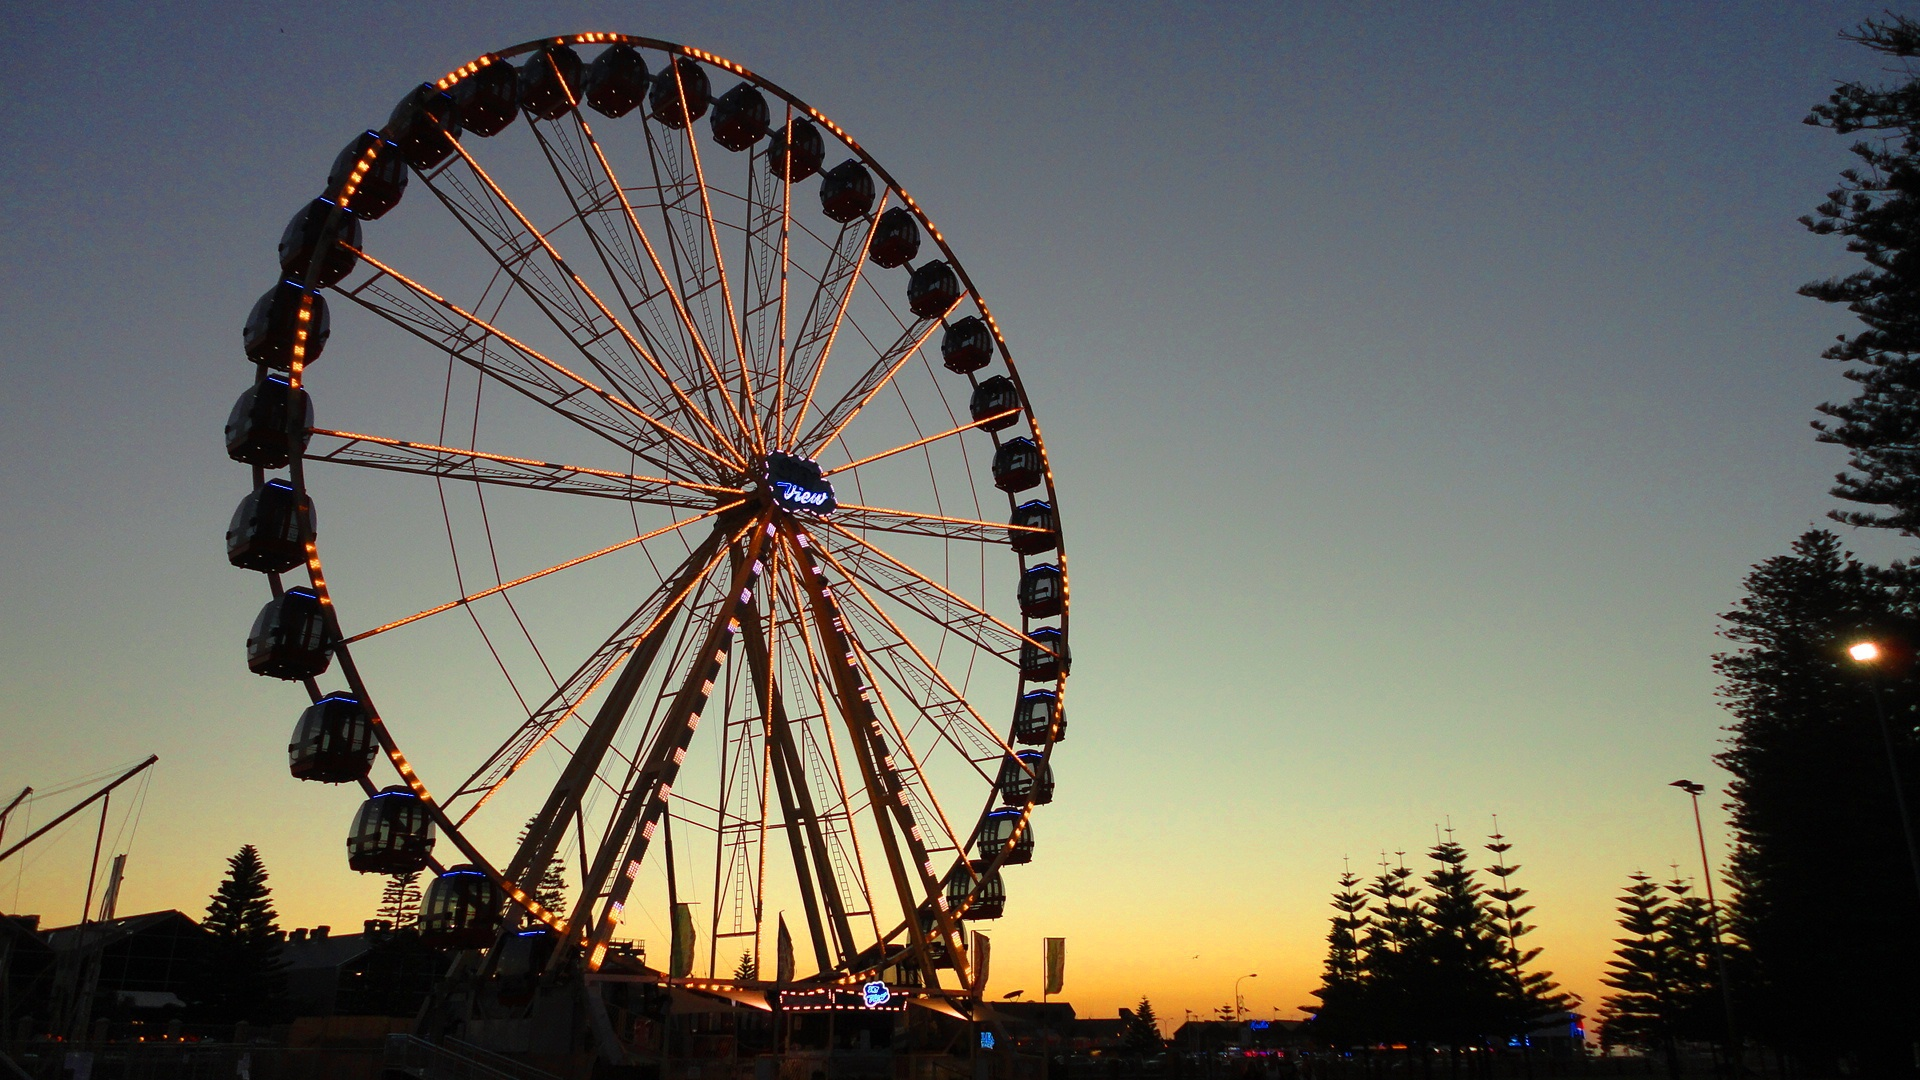 Originally planned for dismantling and relocation to 2012 Royal Show, the Fremantle Ferris Wheel is standing tall at the Esplanade.